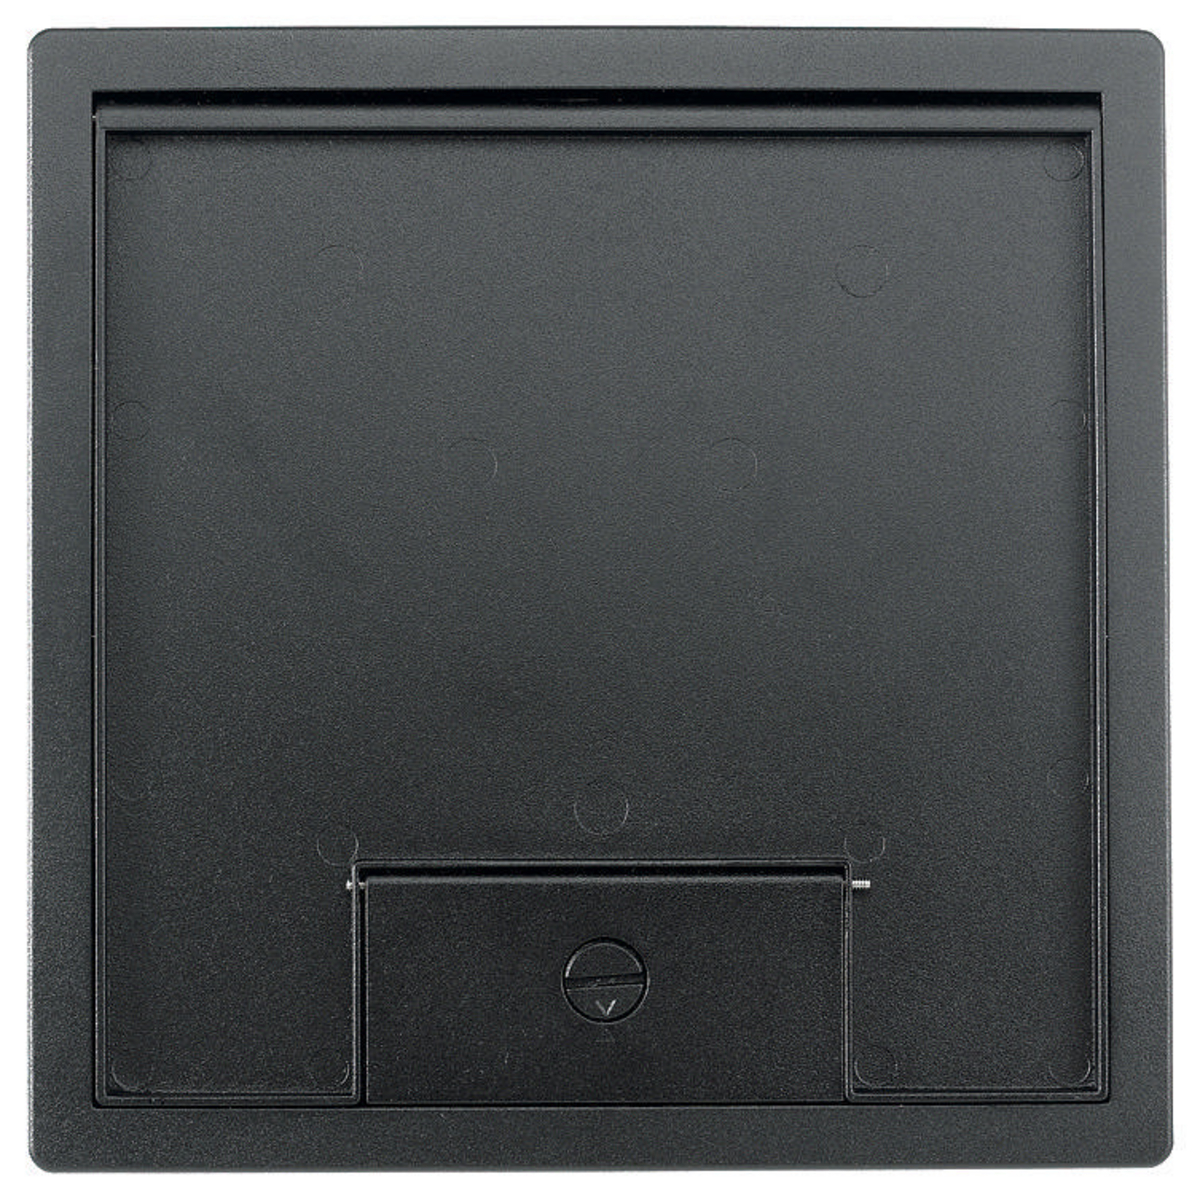 Hubbell HBLTCGNTBKSW 10.69 x 10.69 Inch Black Die-Cast Metal Floor Box Cover and Flange Assembly